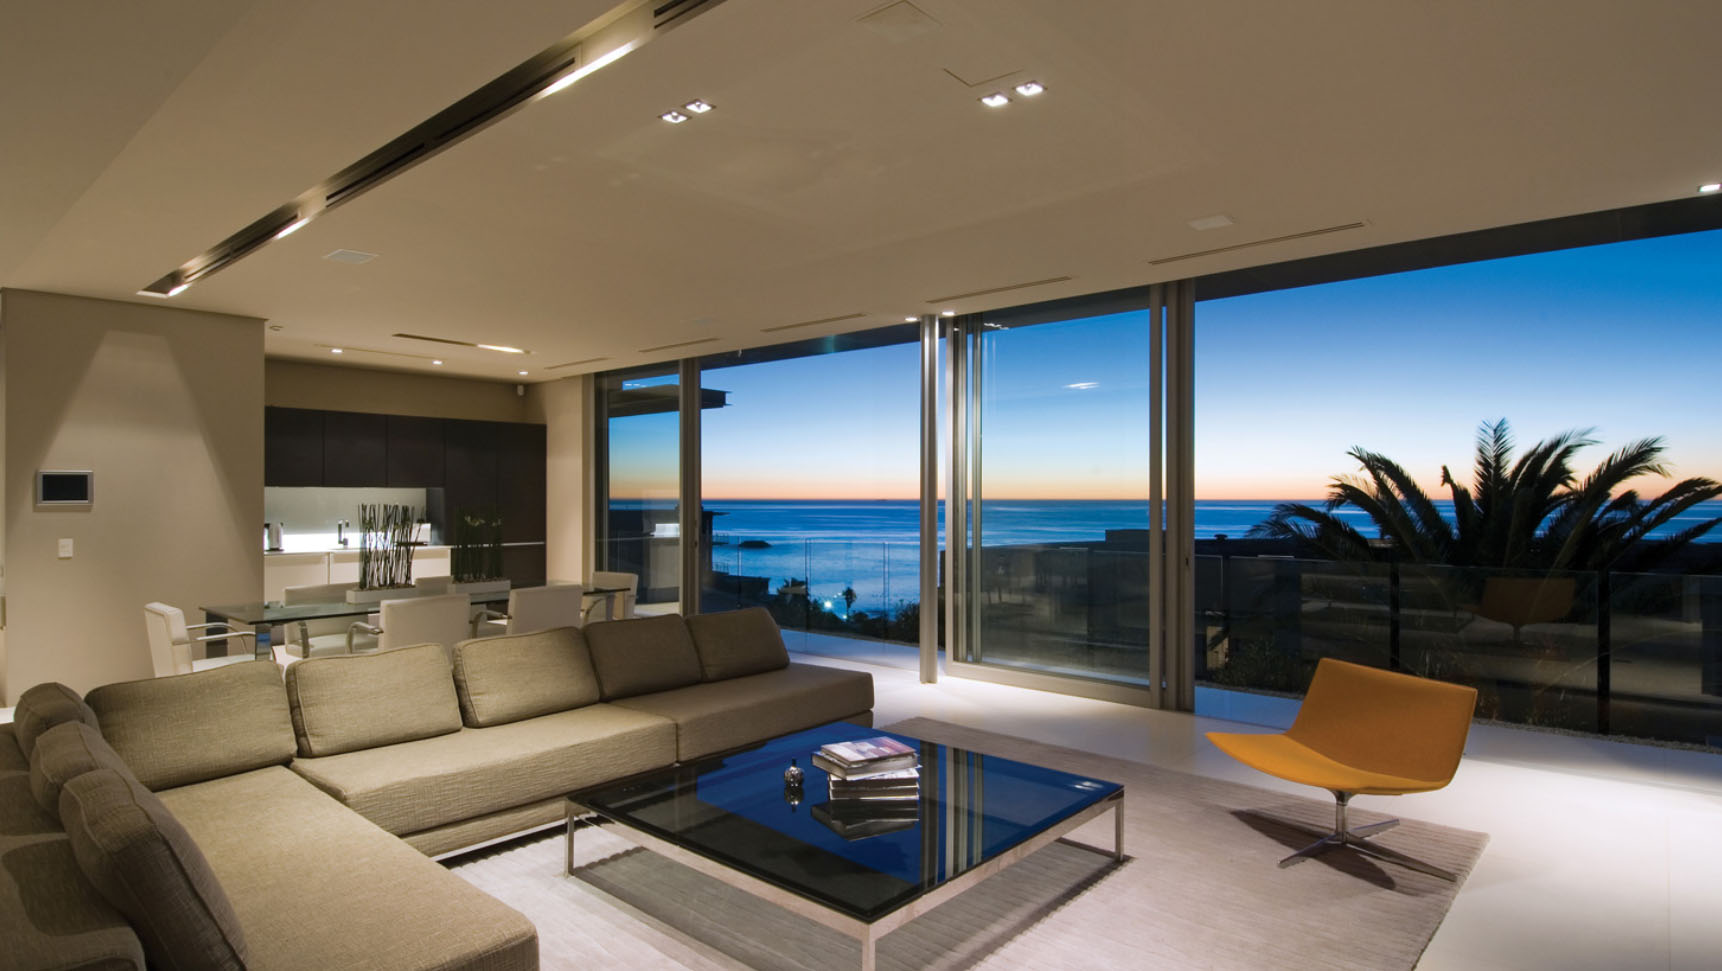 Beautiful Modern Living Rooms Of Minimalist Ocean View Home In South Africa Idesignarch